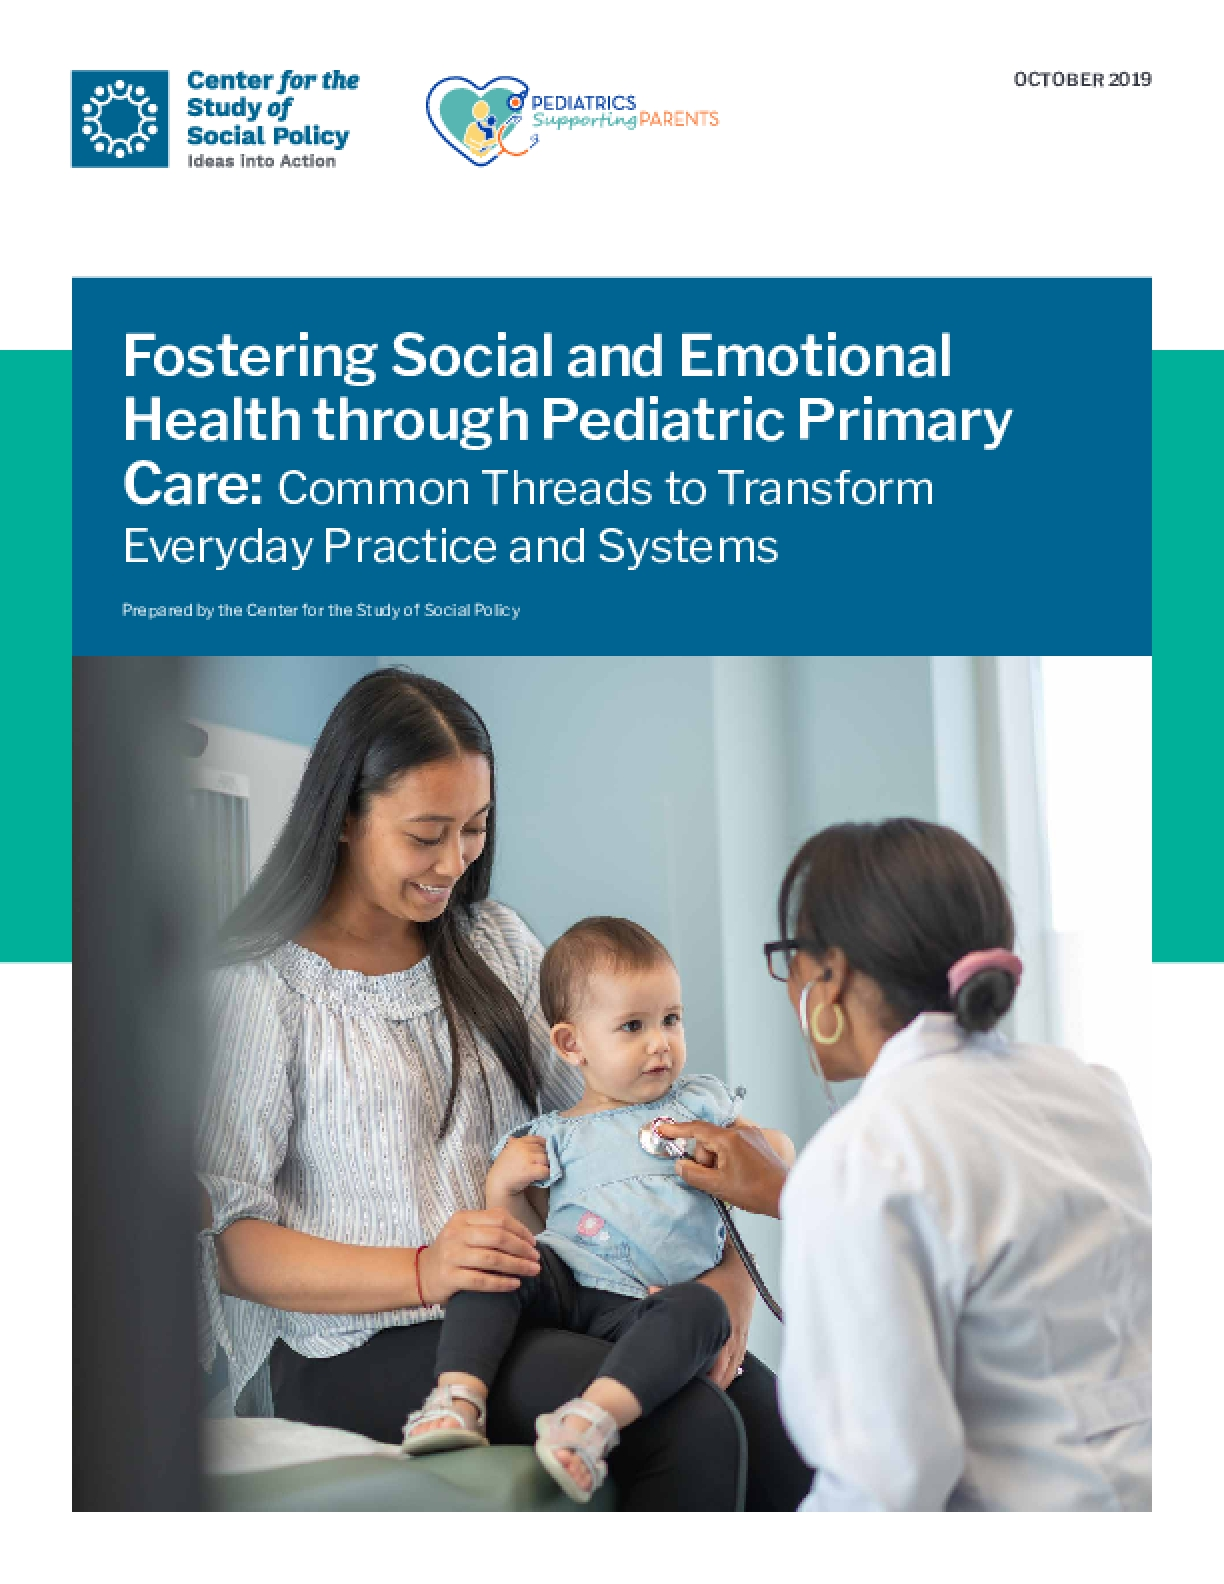 Fostering Social and Emotional Health through Pediatric Primary Care: Common Threads to Transform Everyday Practice and Systems